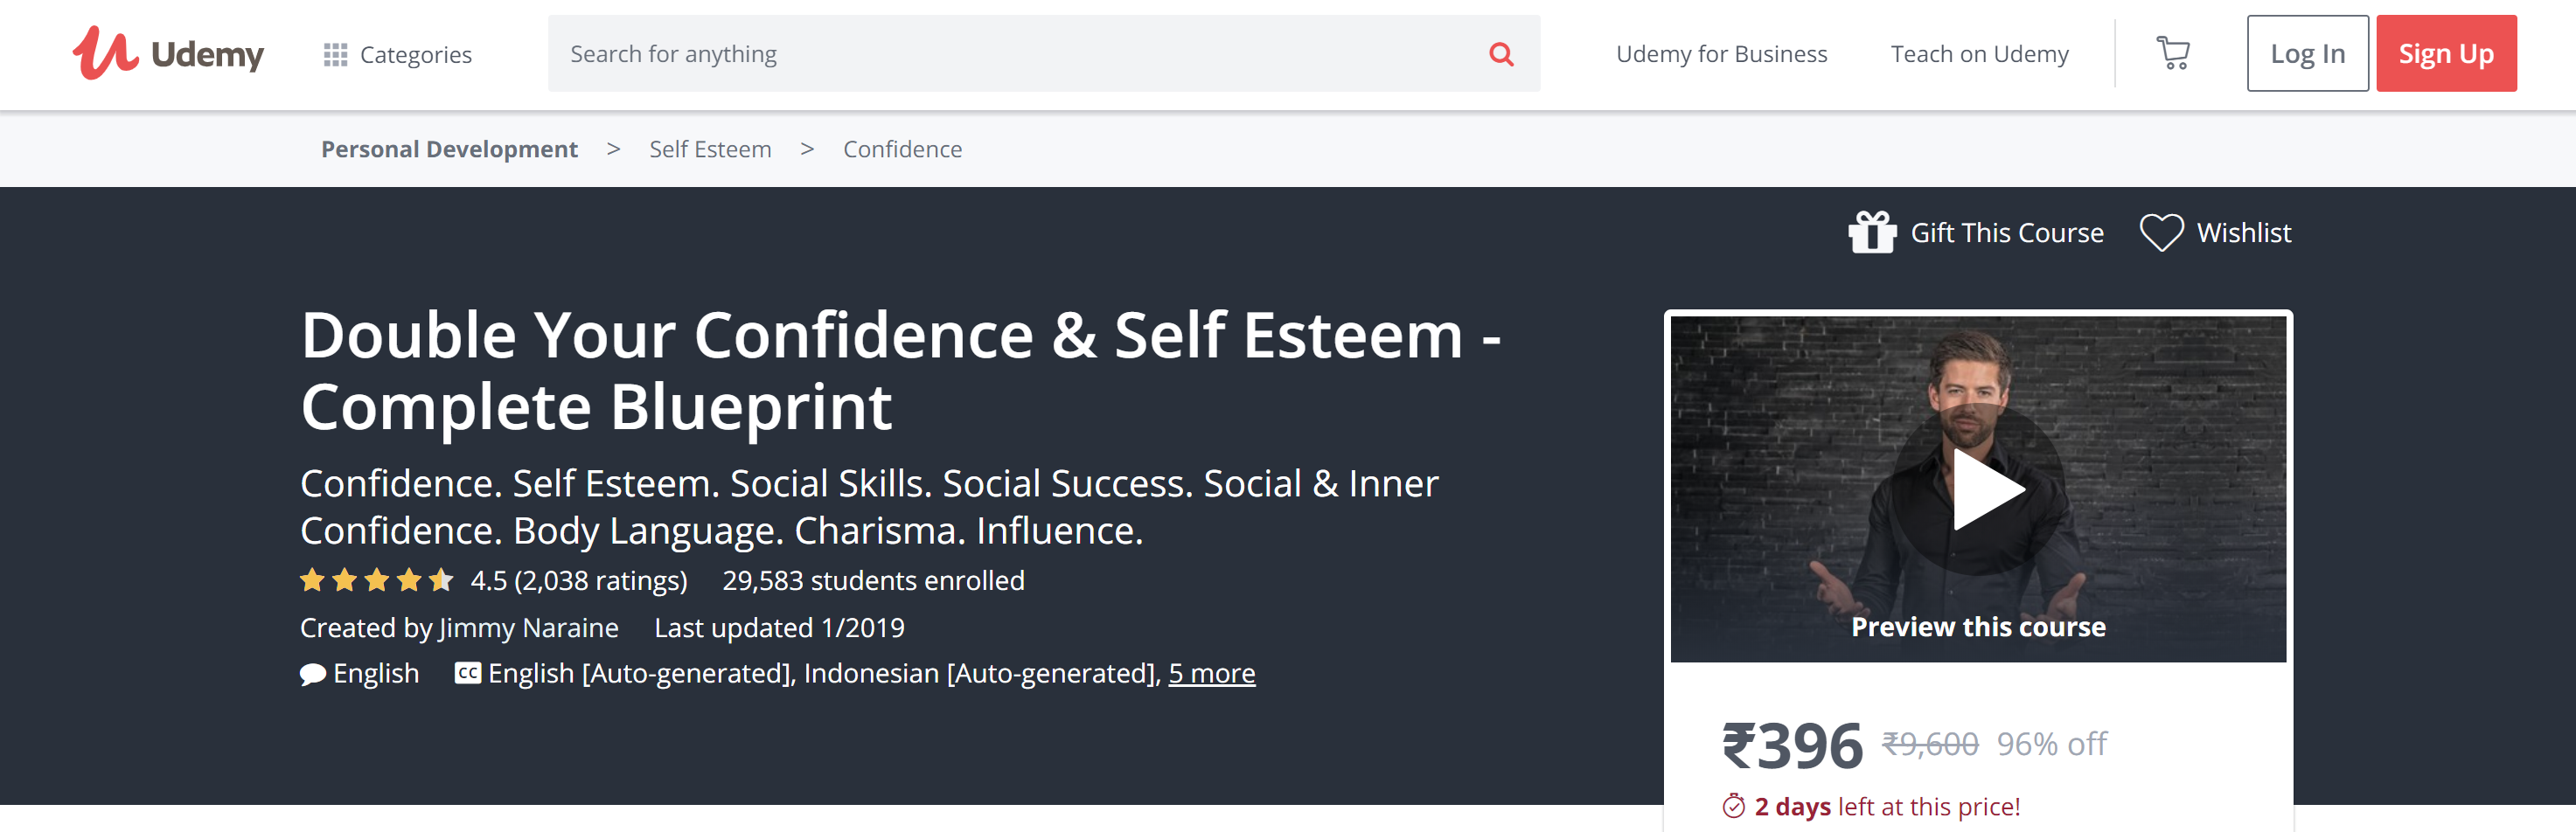 Udemy self esteem courses